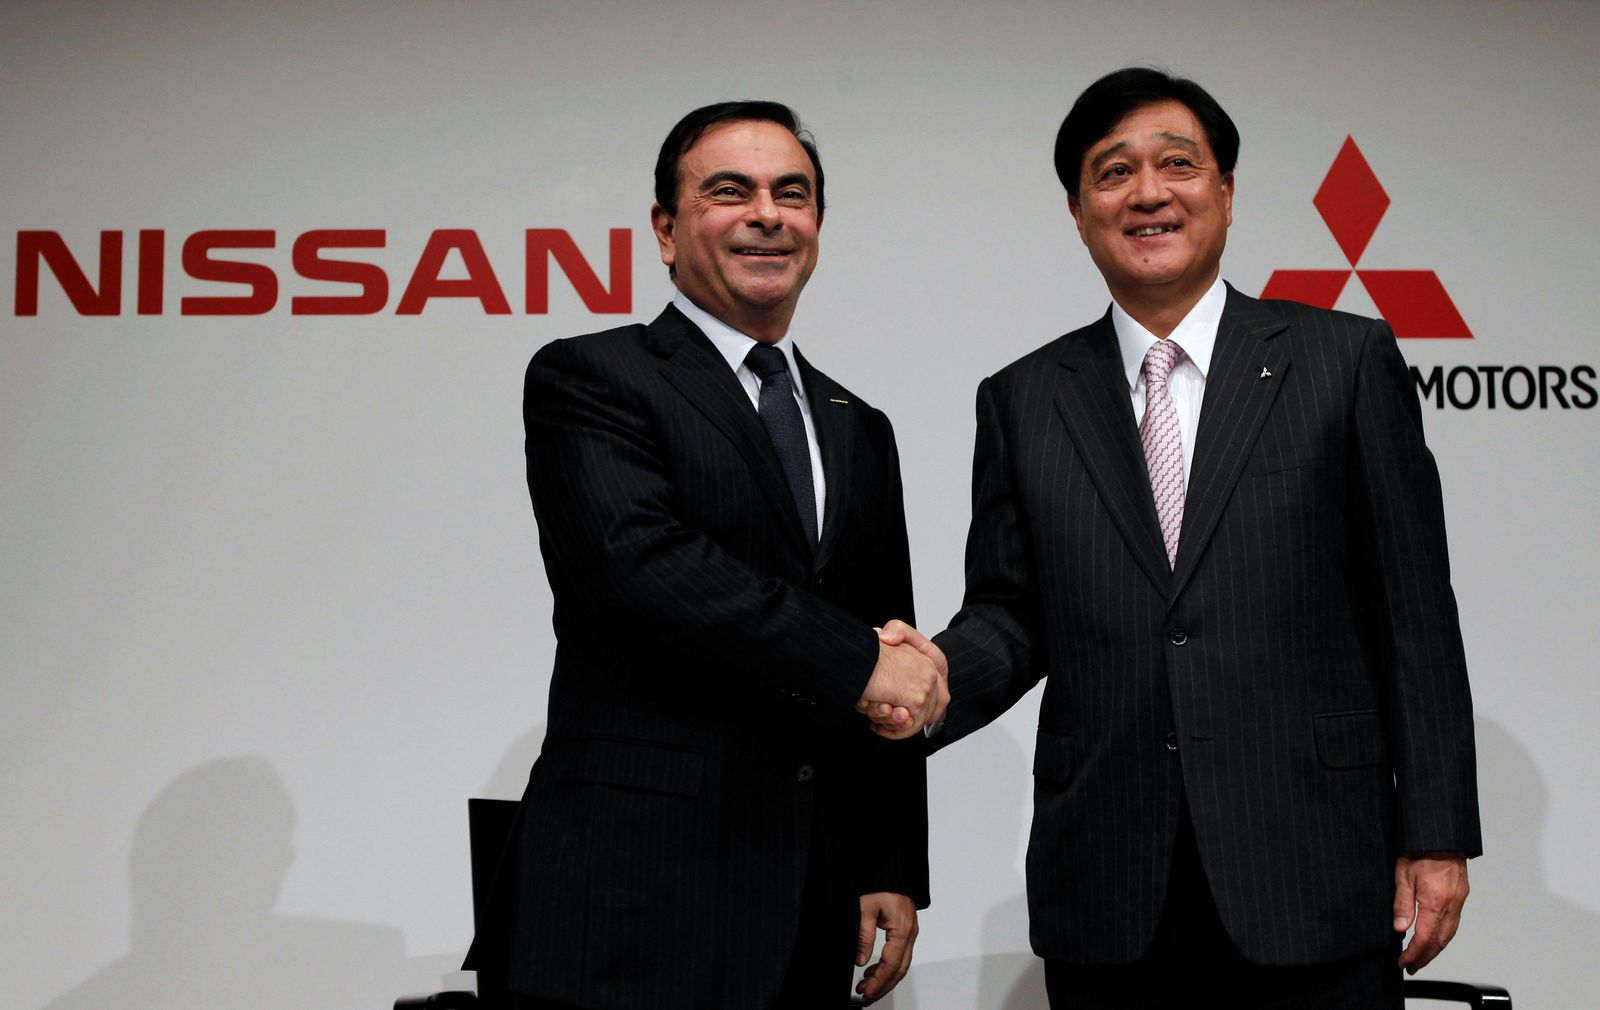 NISSAN-MITSUBISHIMOTORS/INVESTMENT